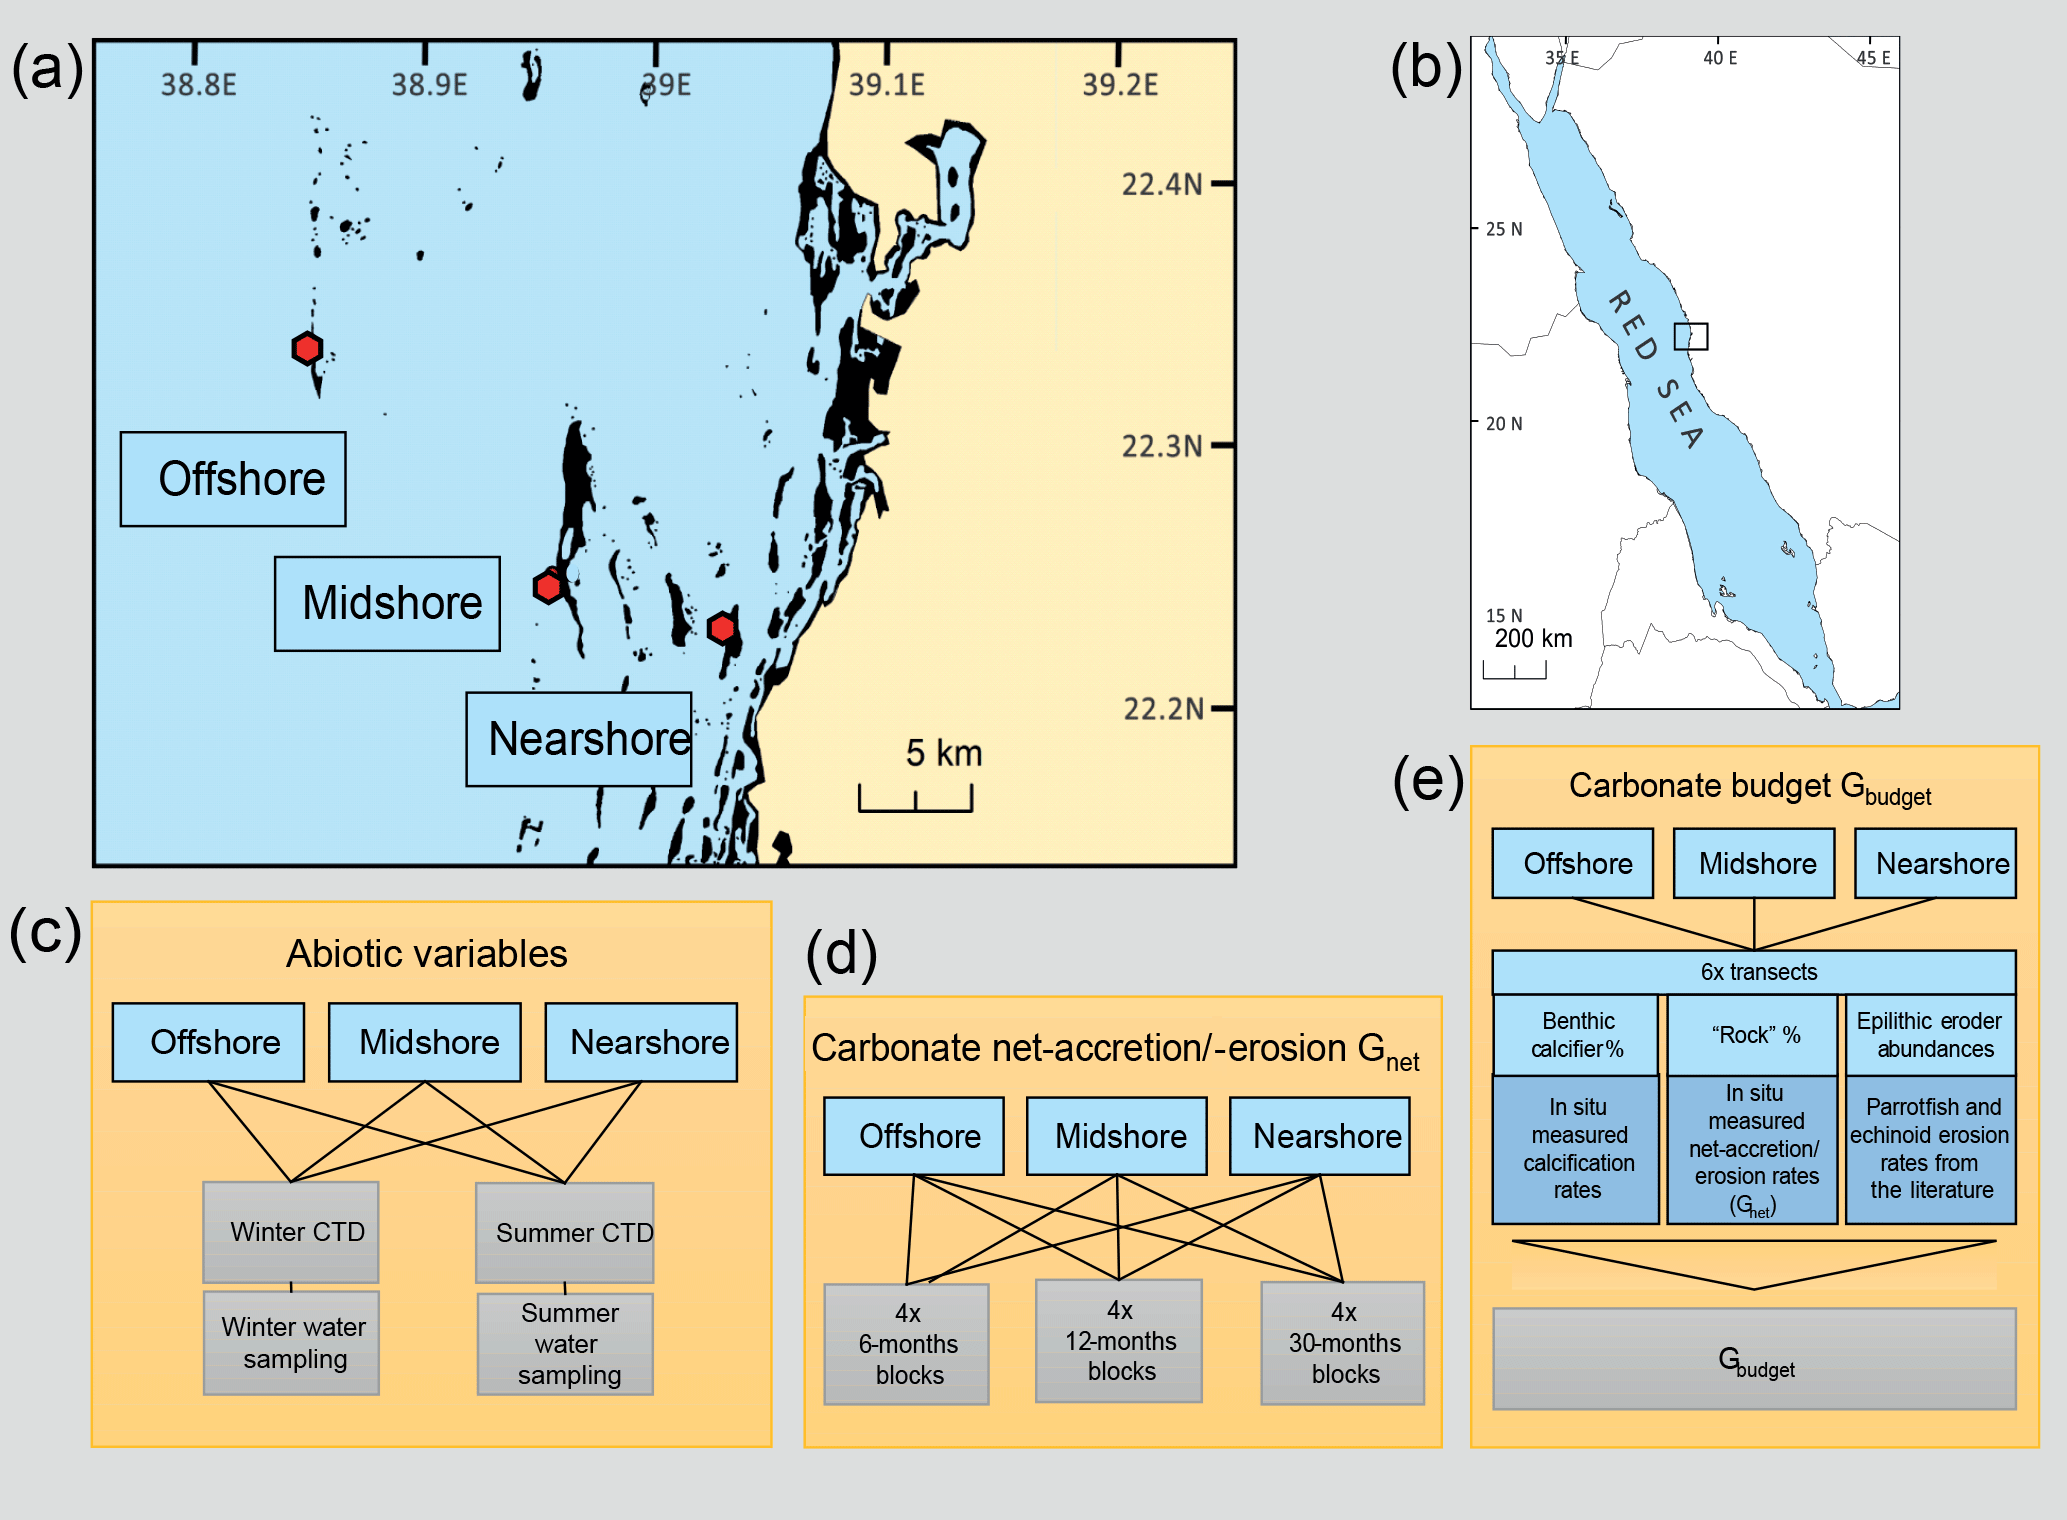 BG - Coral reef carbonate budgets and ecological drivers in